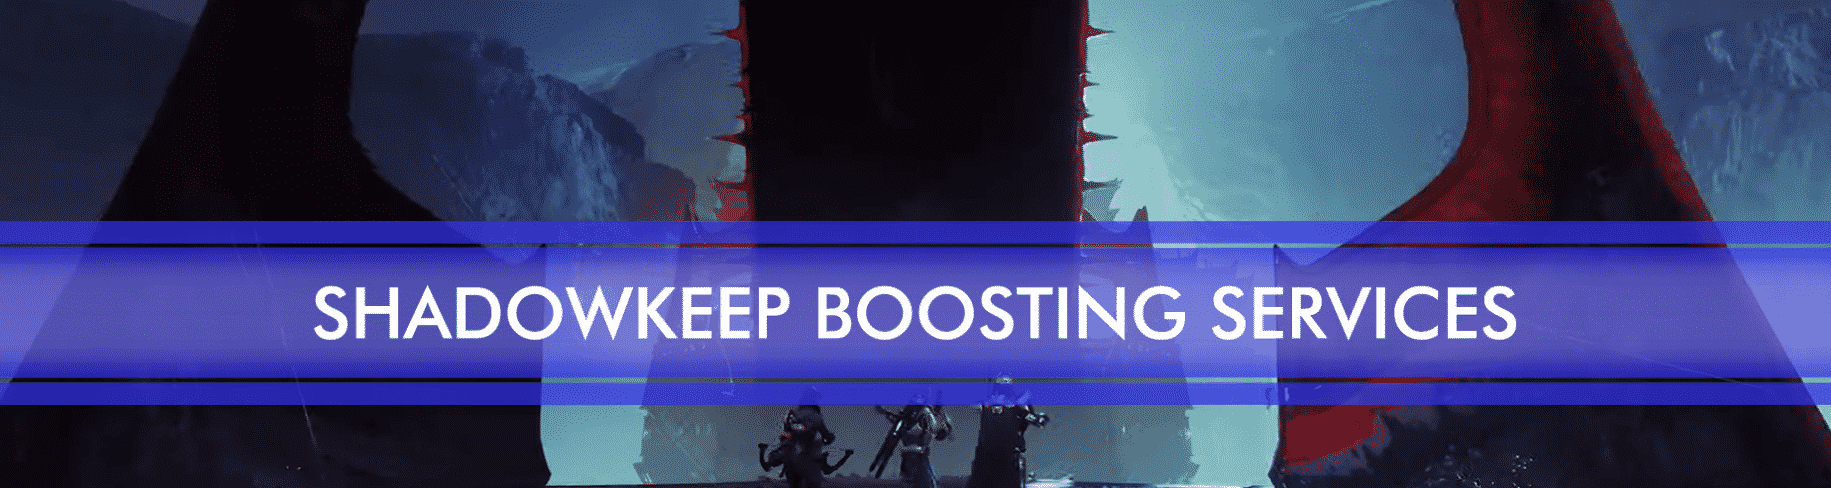 Shadowkeep boosting services